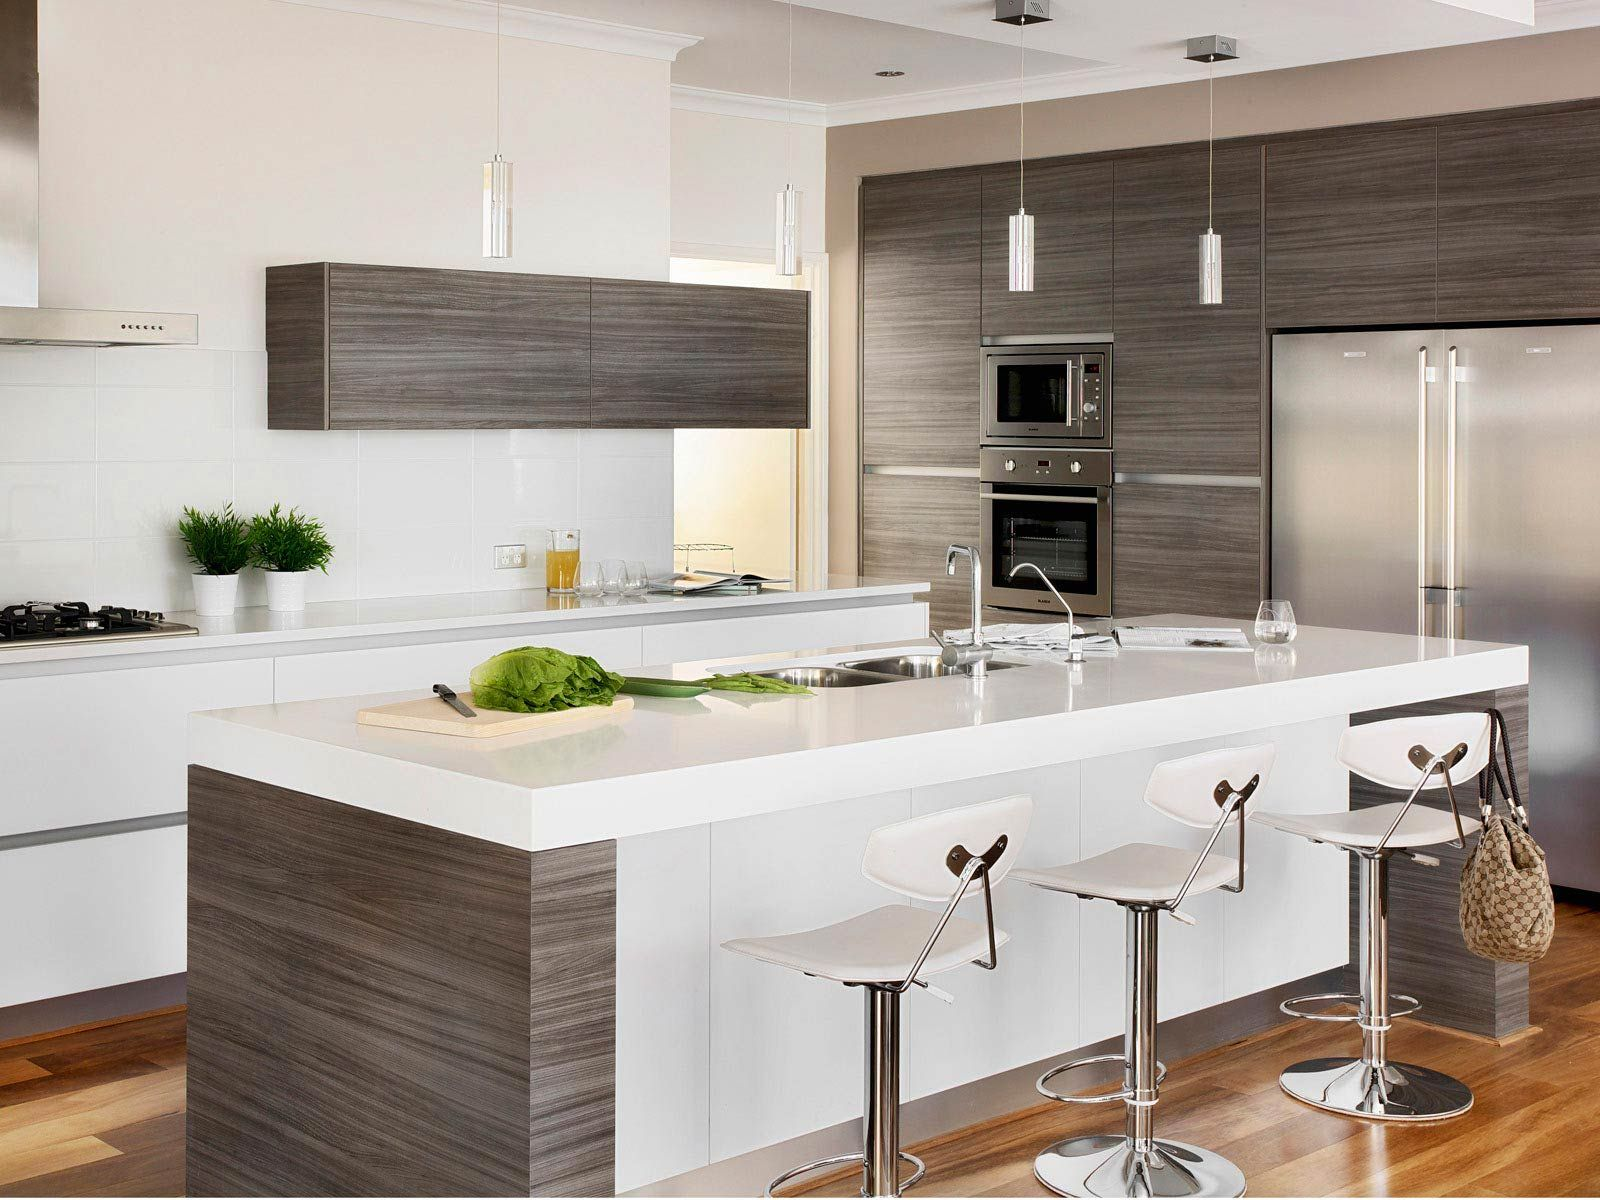 Kitchen Renovations As Renovation Ideas For Fascinating Design With Amazing Layout Cool Ikea